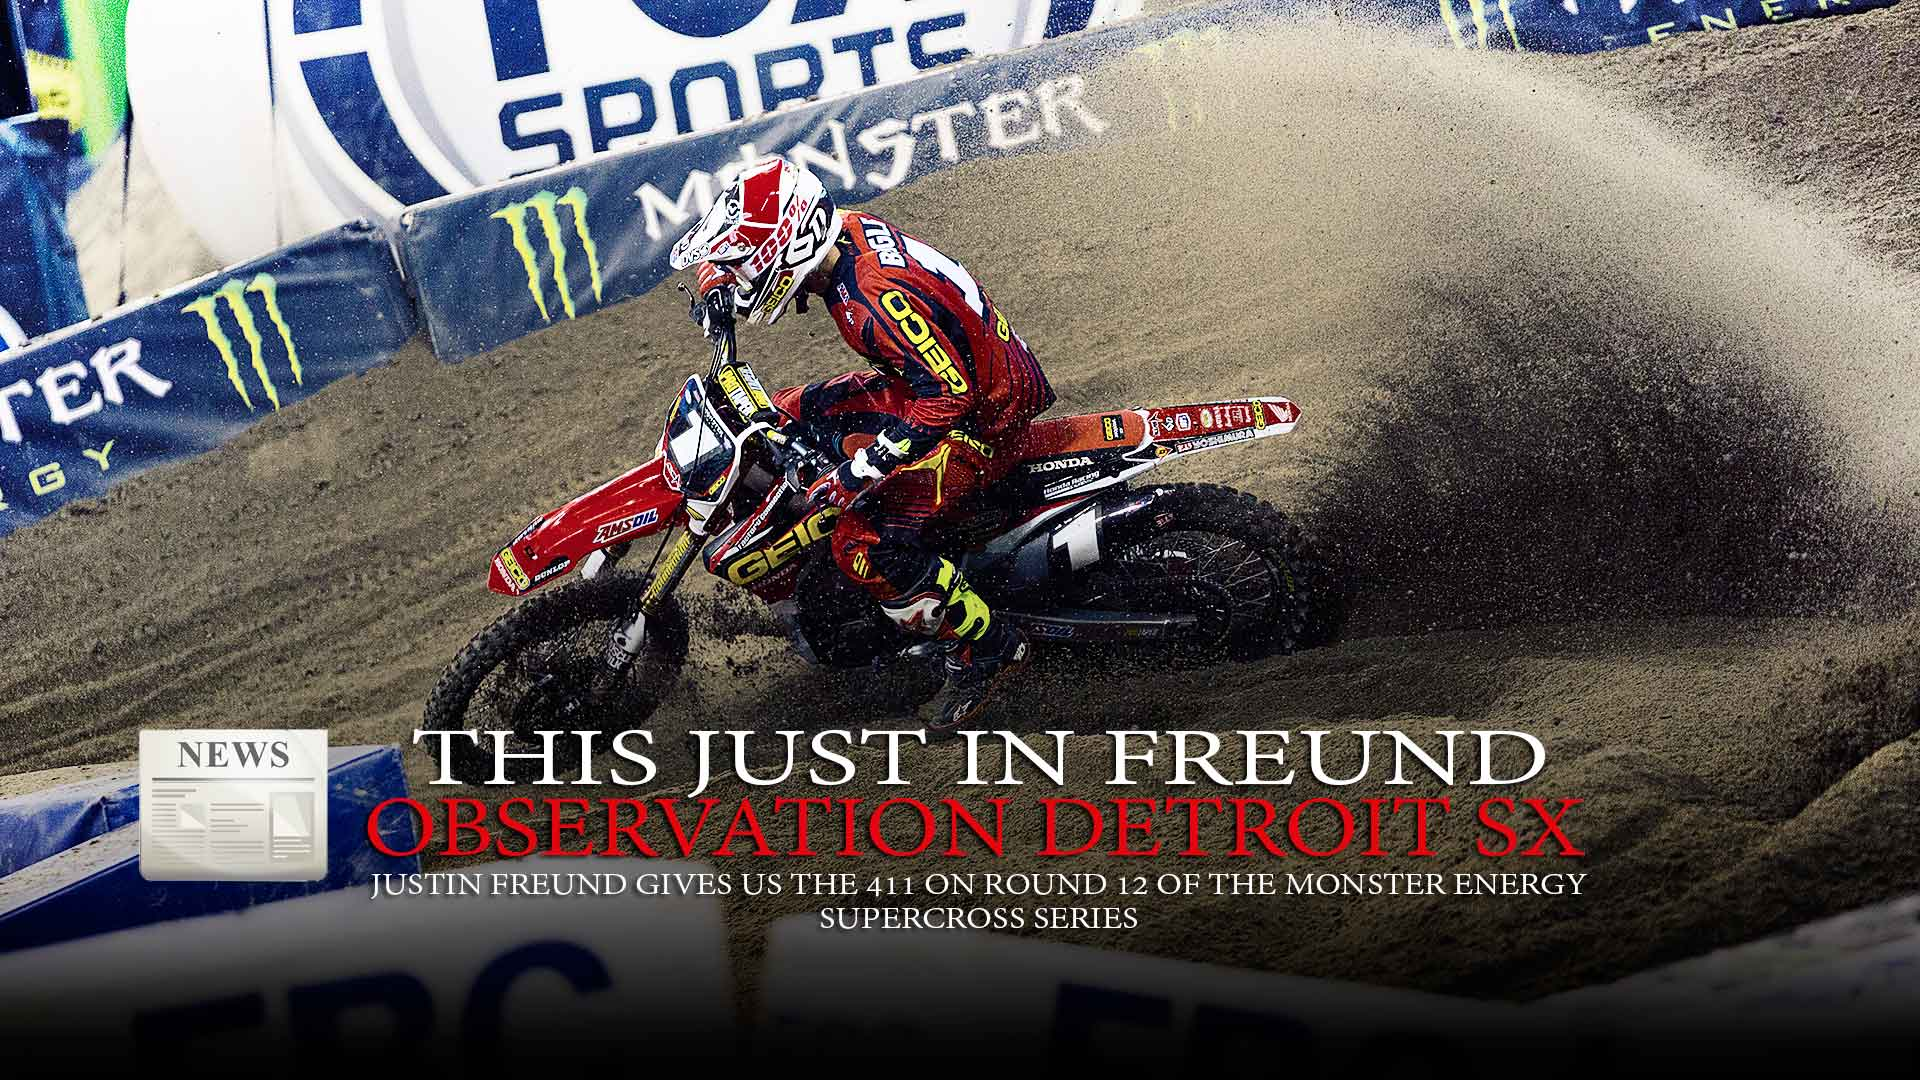 This Just In Freund: Observation Detroit Supercross